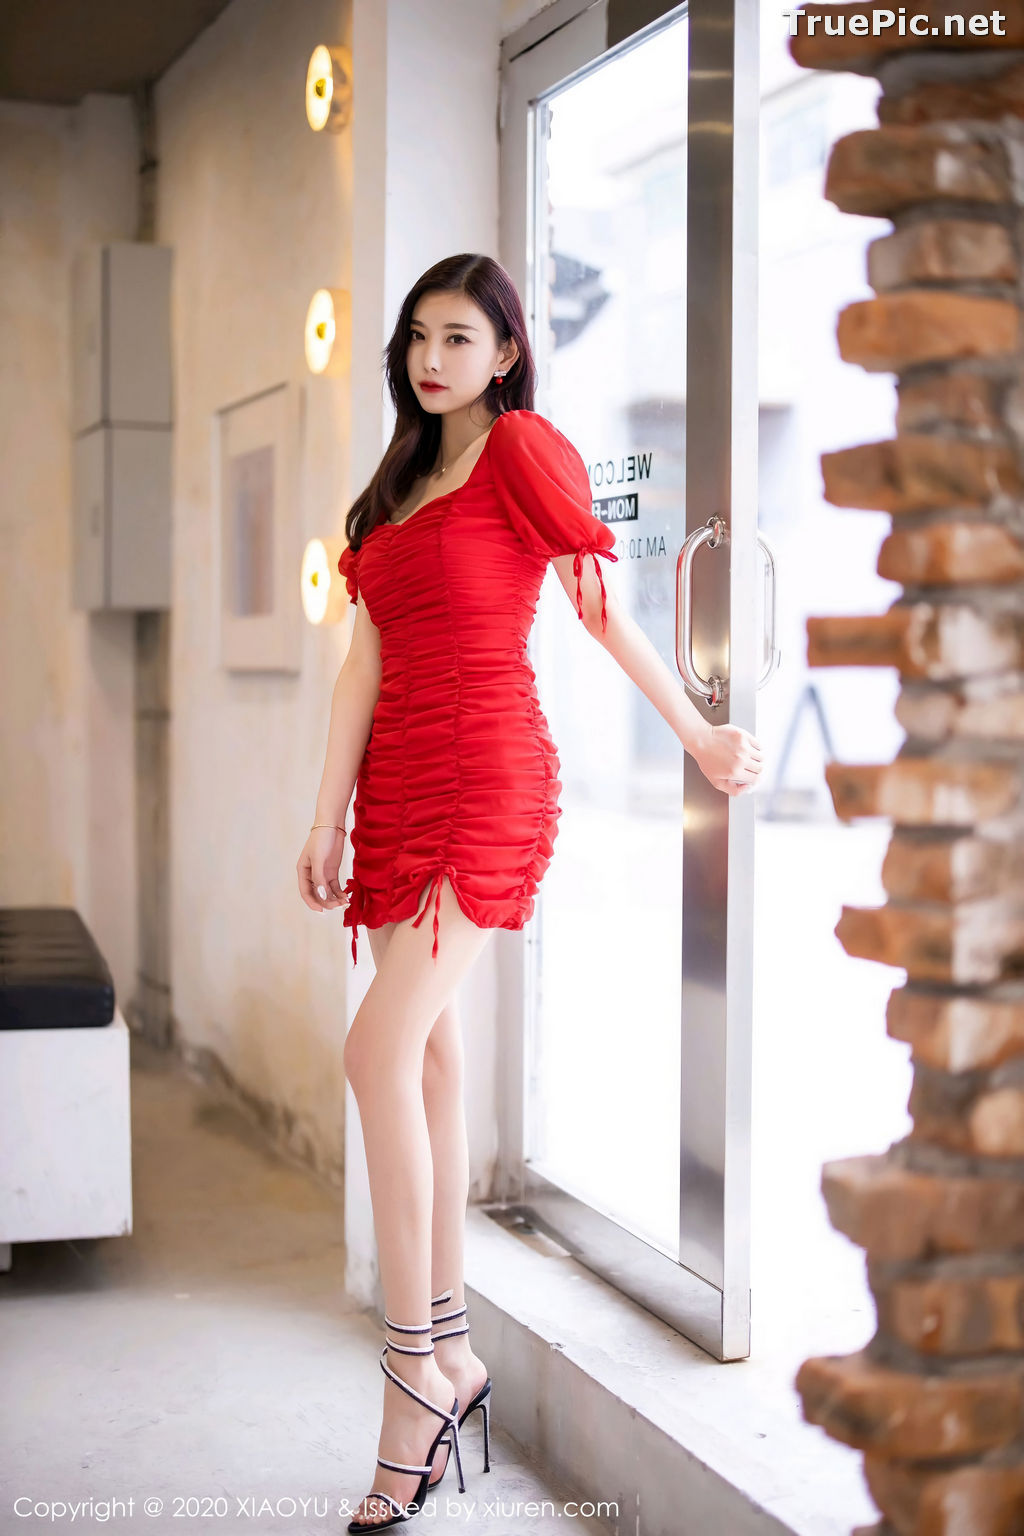 Image XiaoYu Vol.326 - Chinese Model - Yang Chen Chen (杨晨晨sugar) Sexy With Red Bodycon Dress - TruePic.net - Picture-3